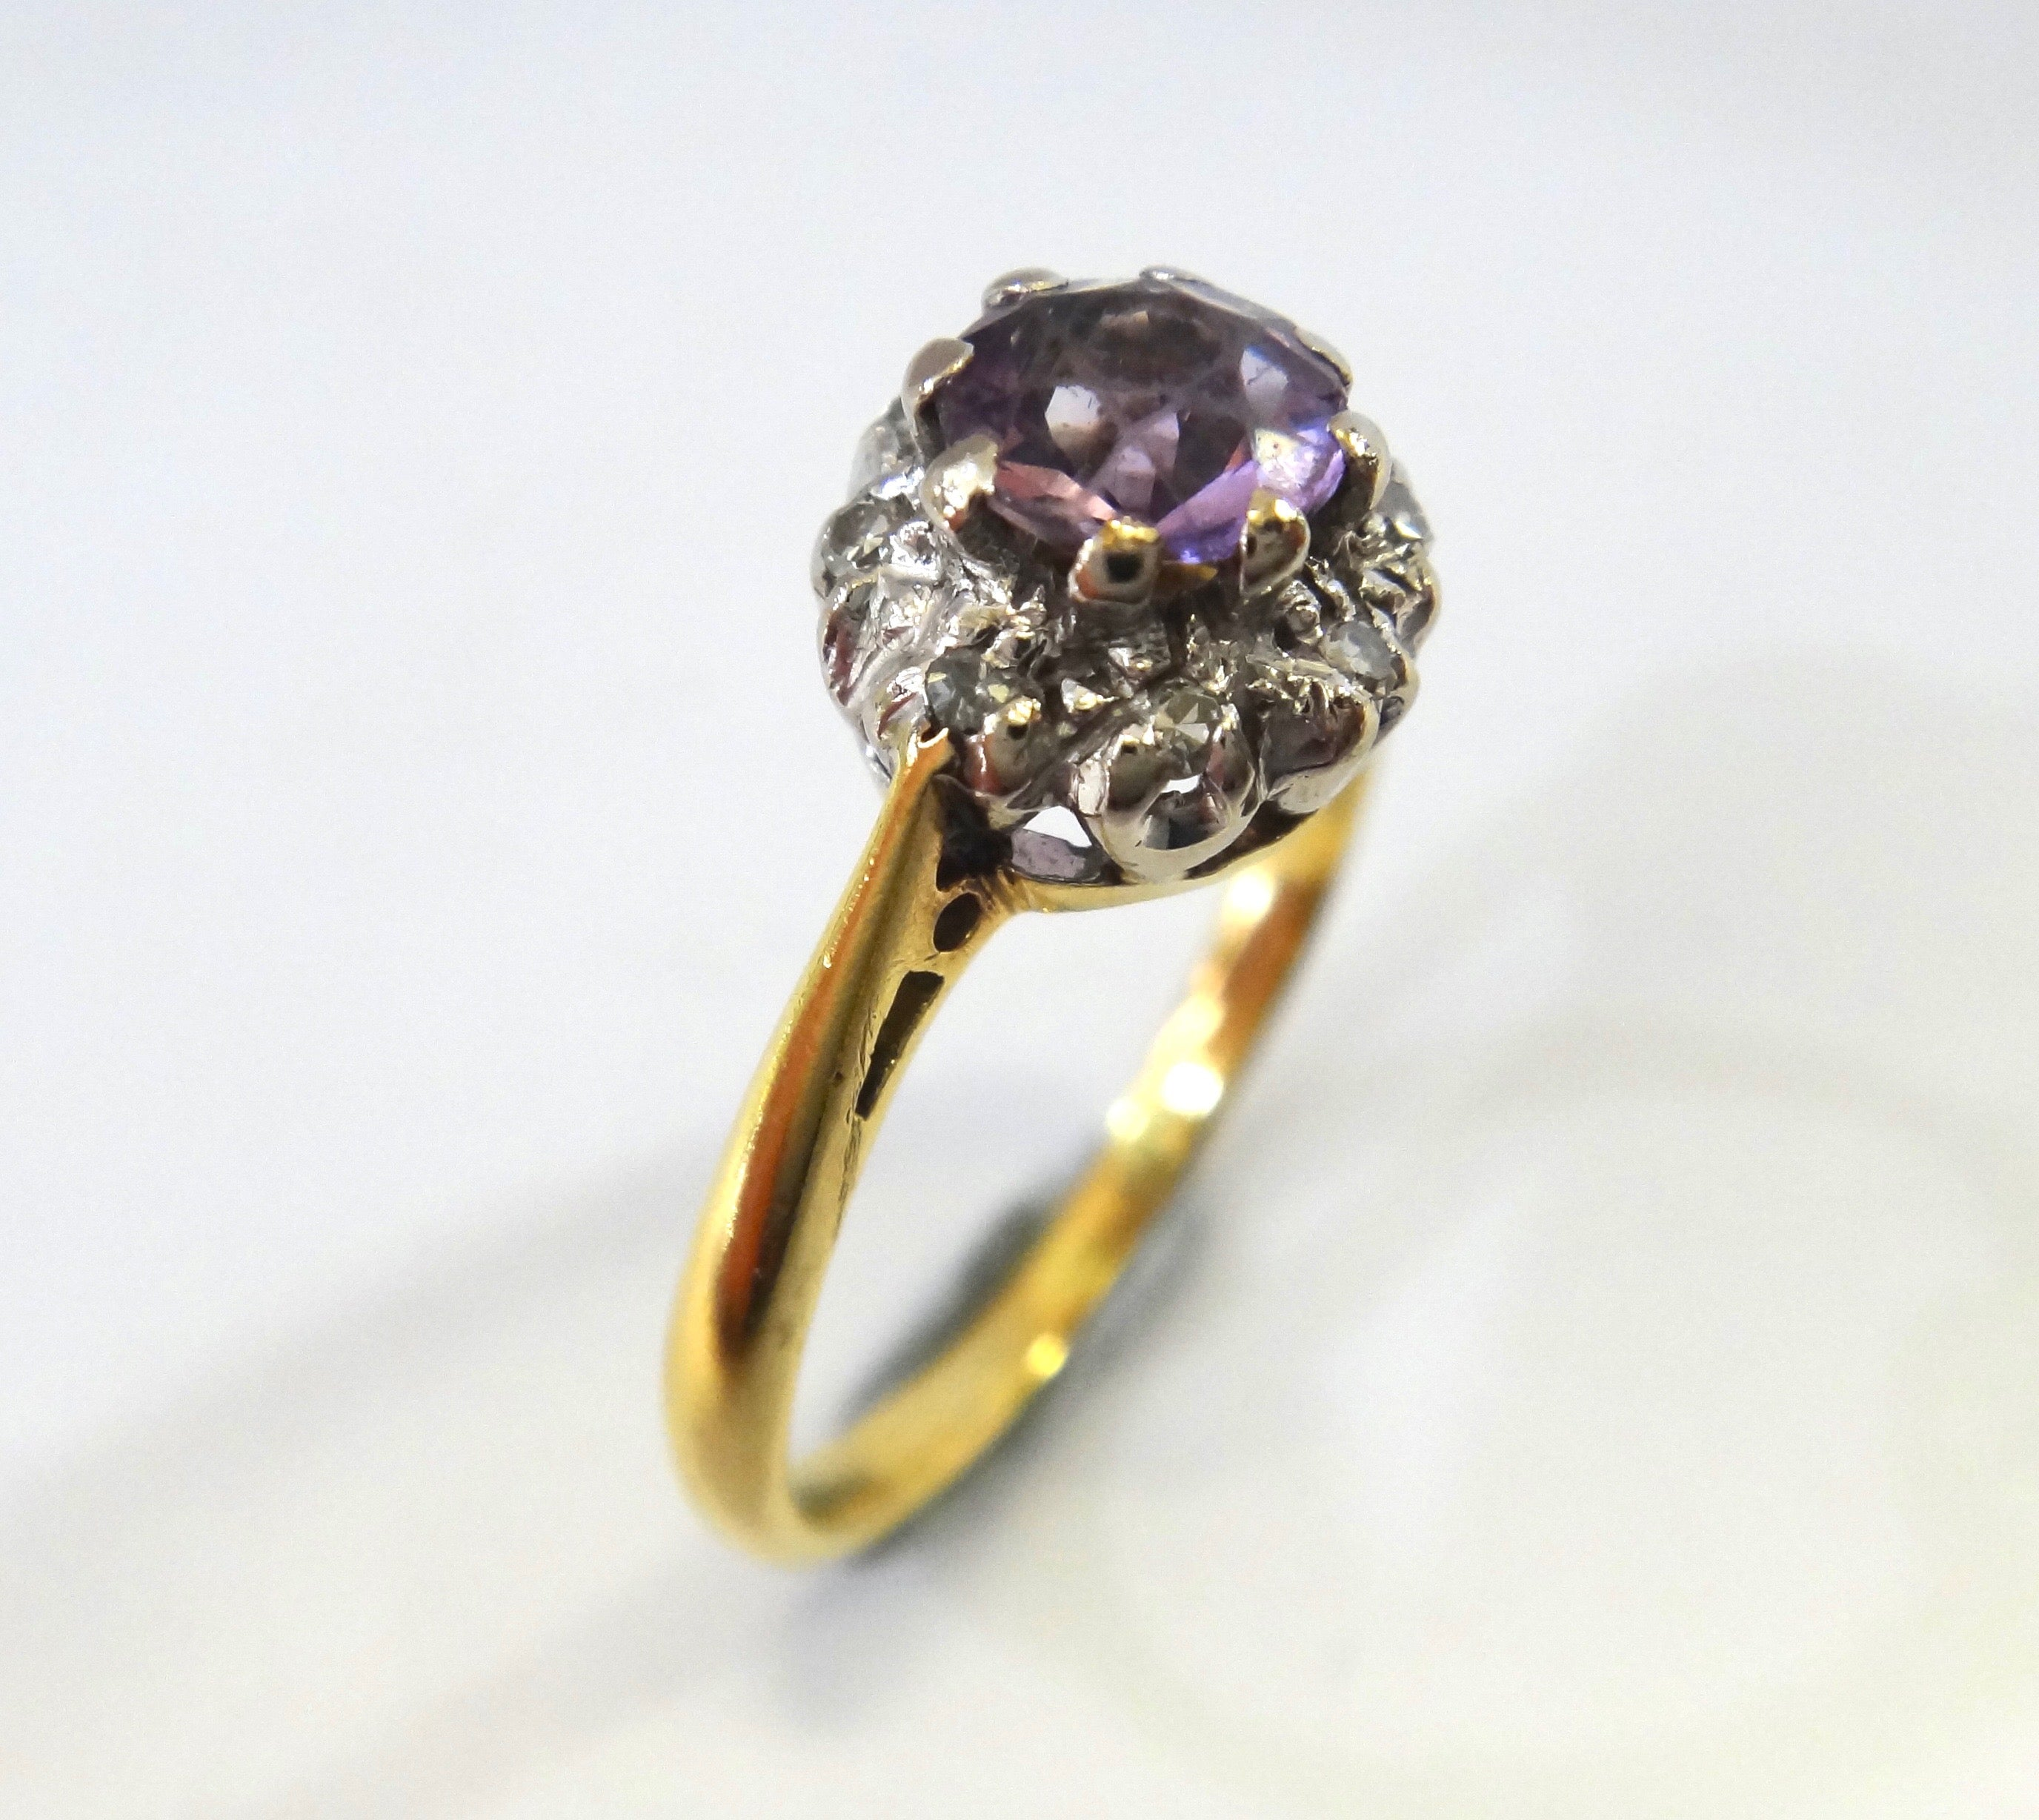 18CT Yellow Gold, Diamond & Pale Amethyst Ring